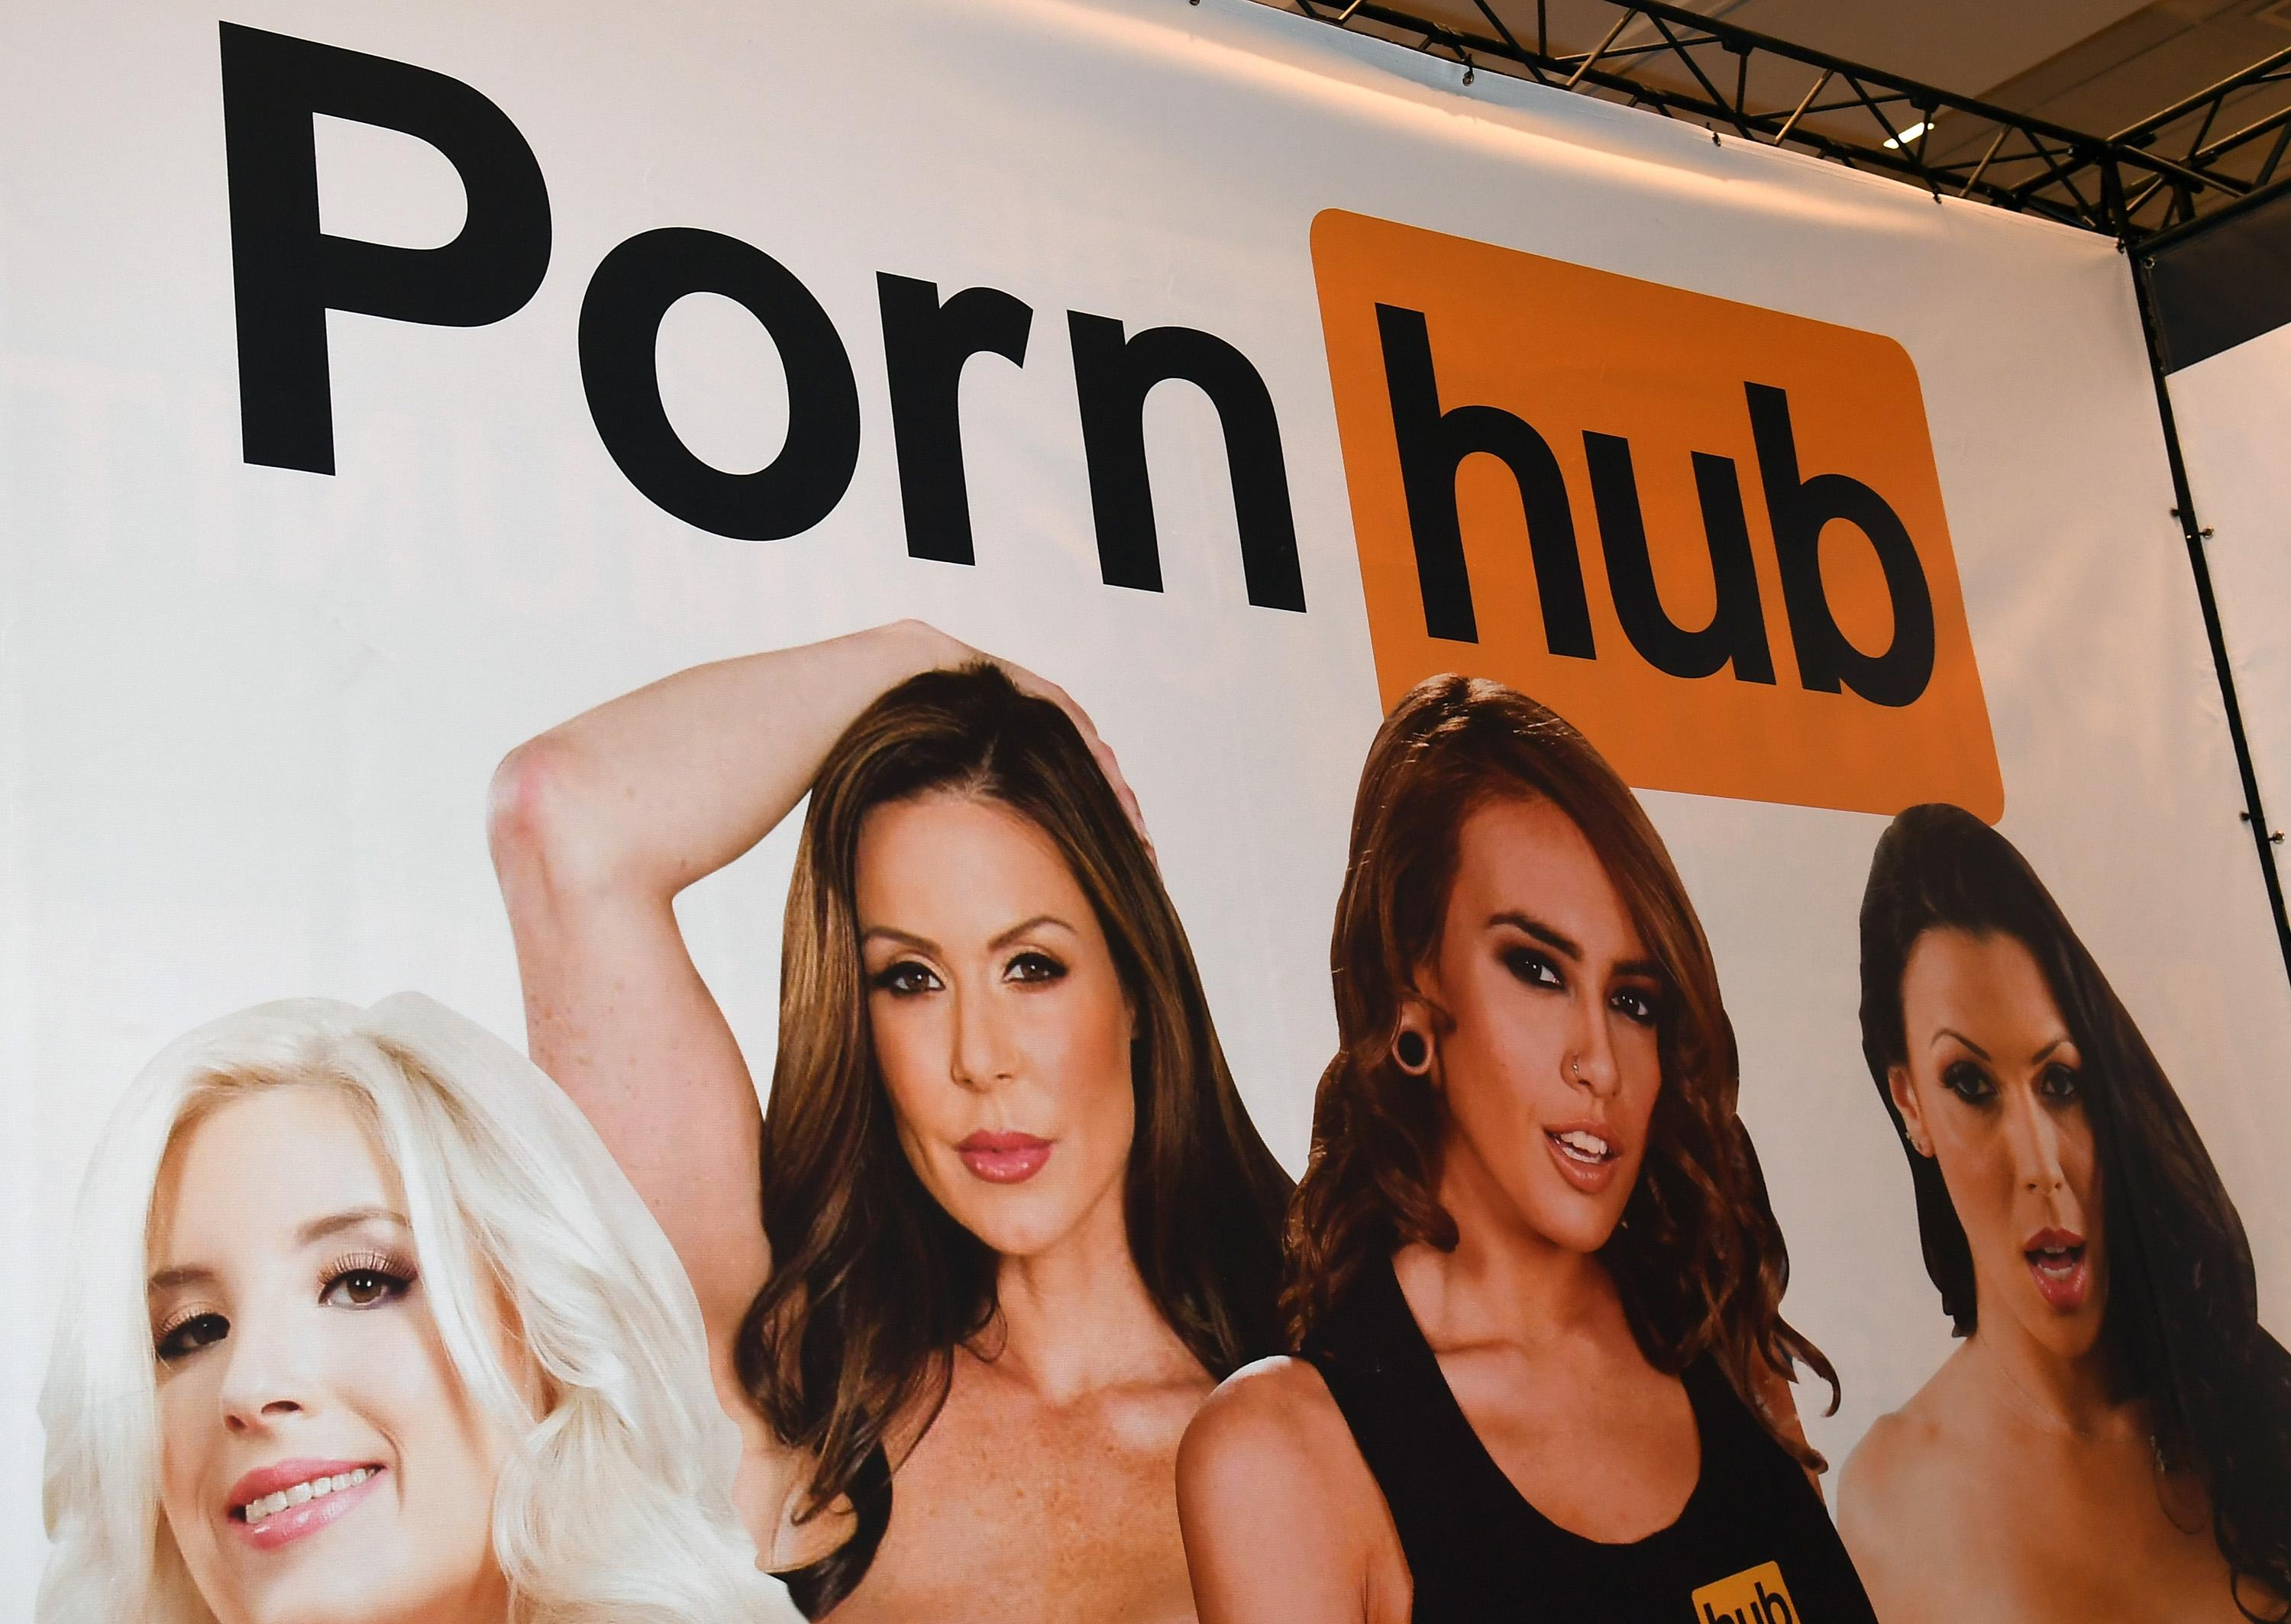 Pornhub and Twitter are banning 'deepfake' face-swap porn videos